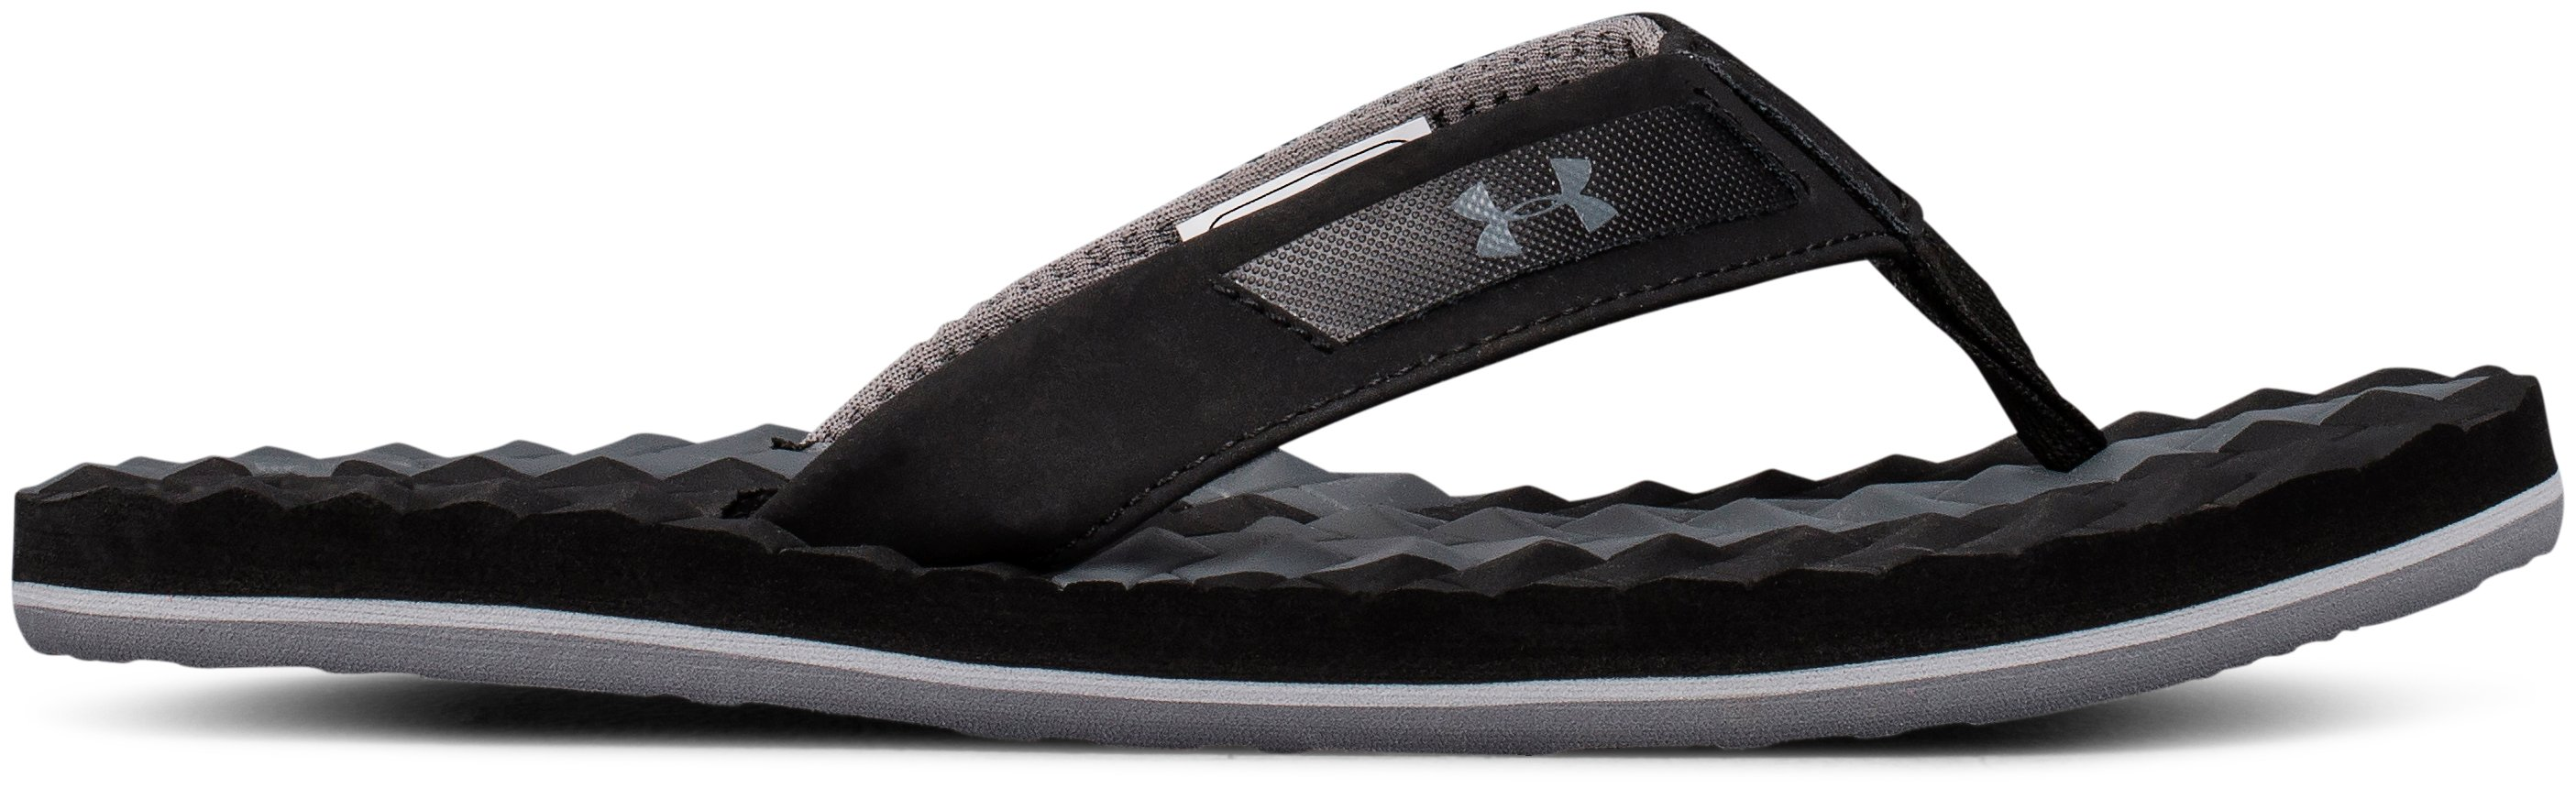 Boys' UA Marathon Key III Slides, Black